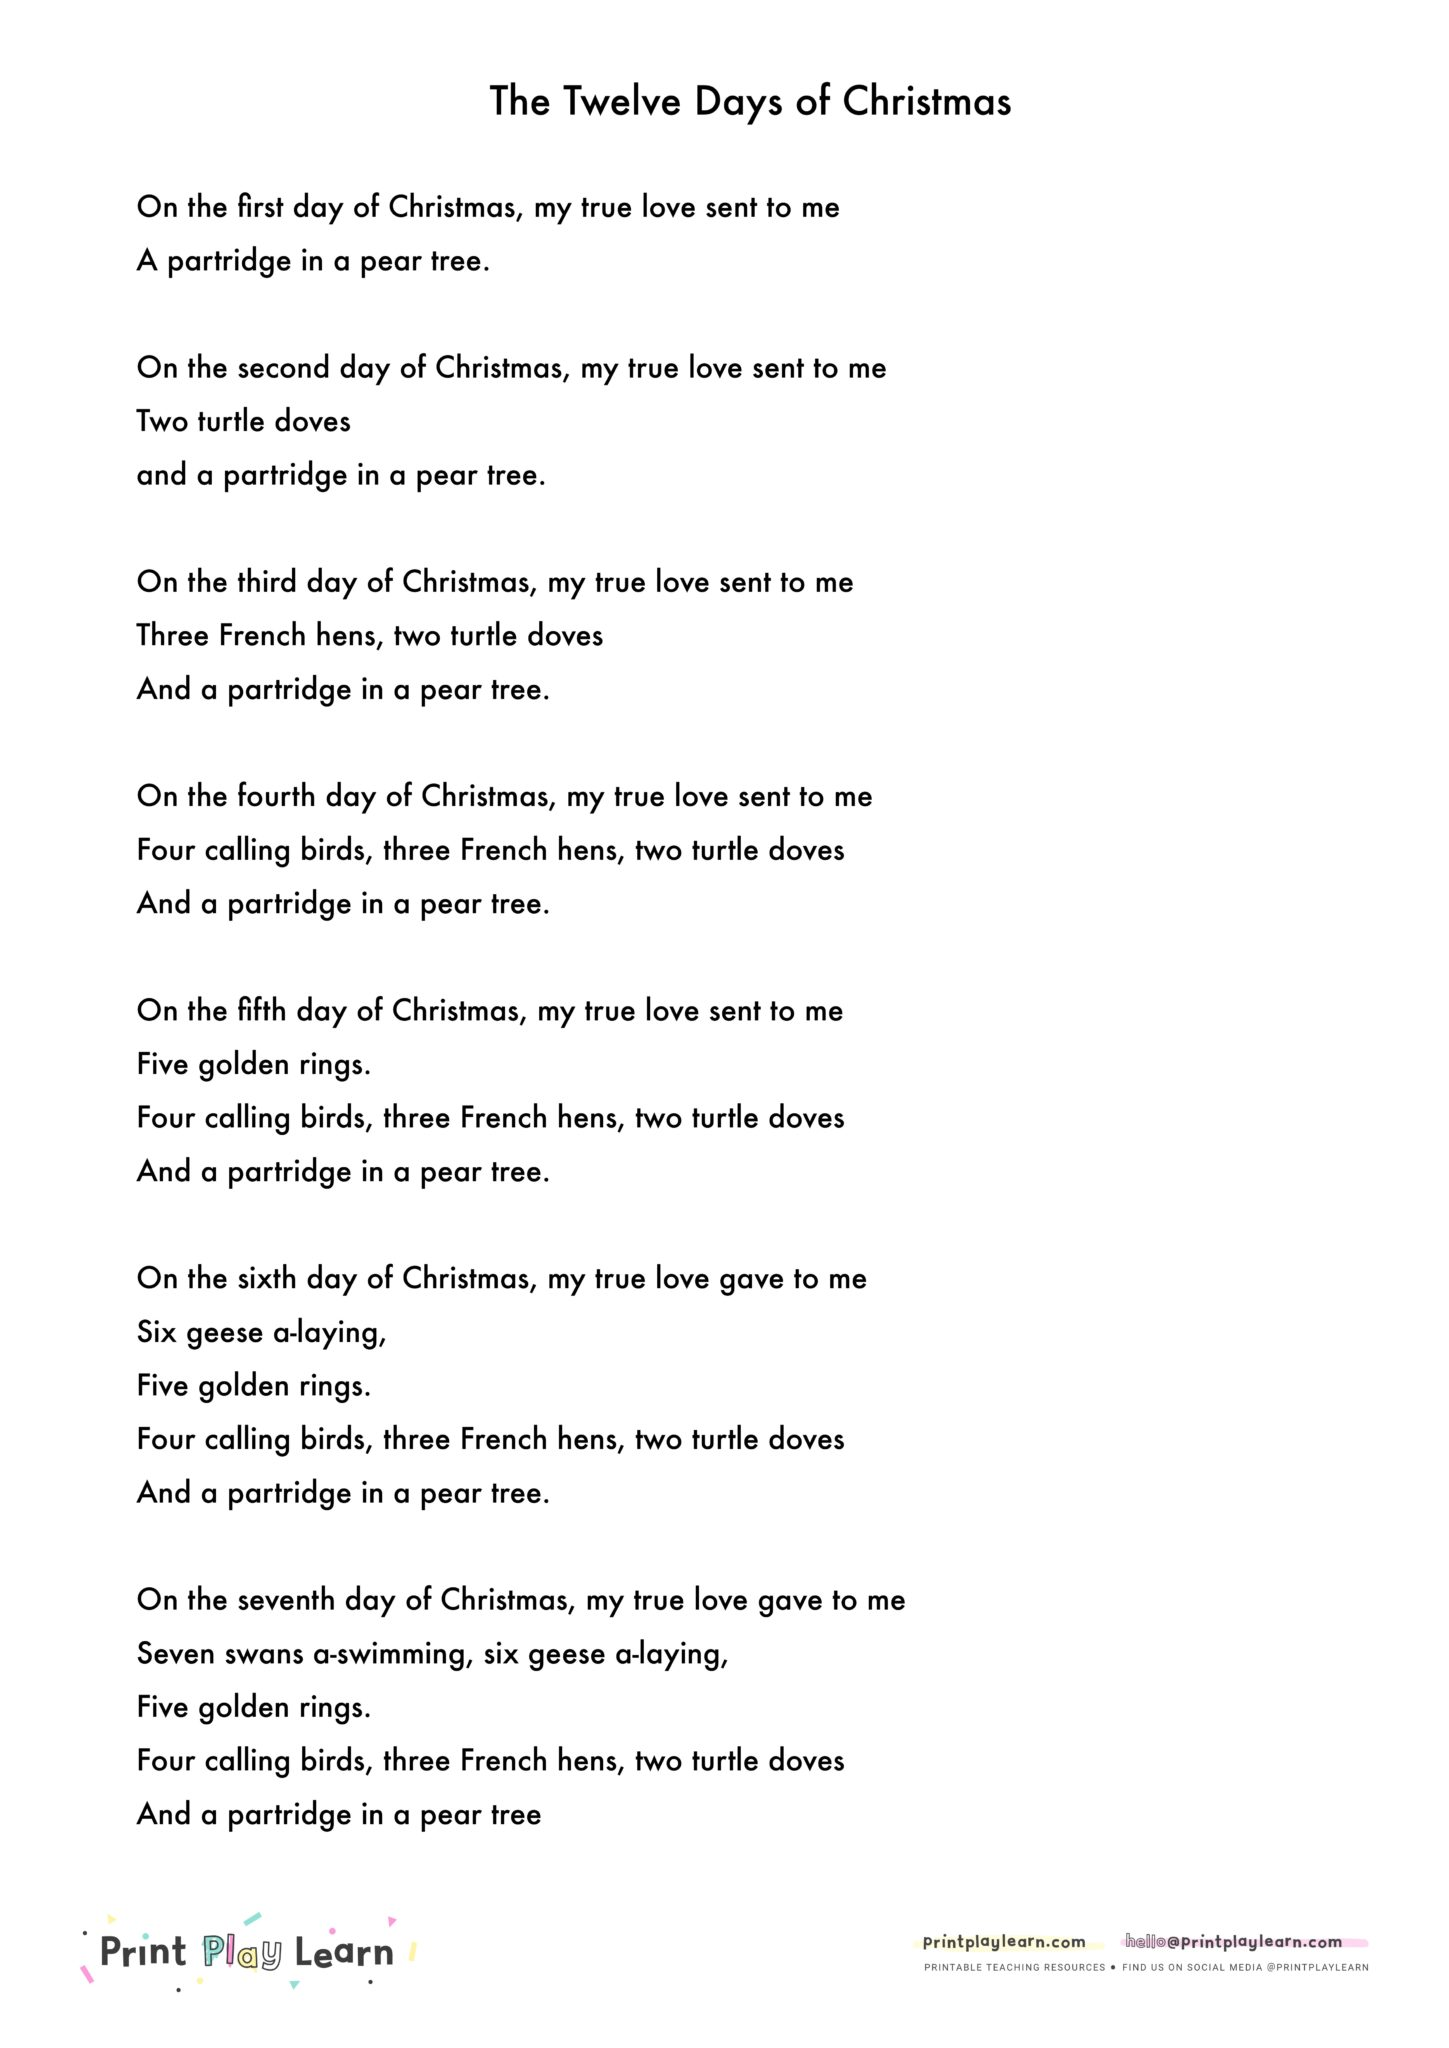 12 Days Of Christmas Song.Twelve Days Of Christmas Song Words Printable Teaching